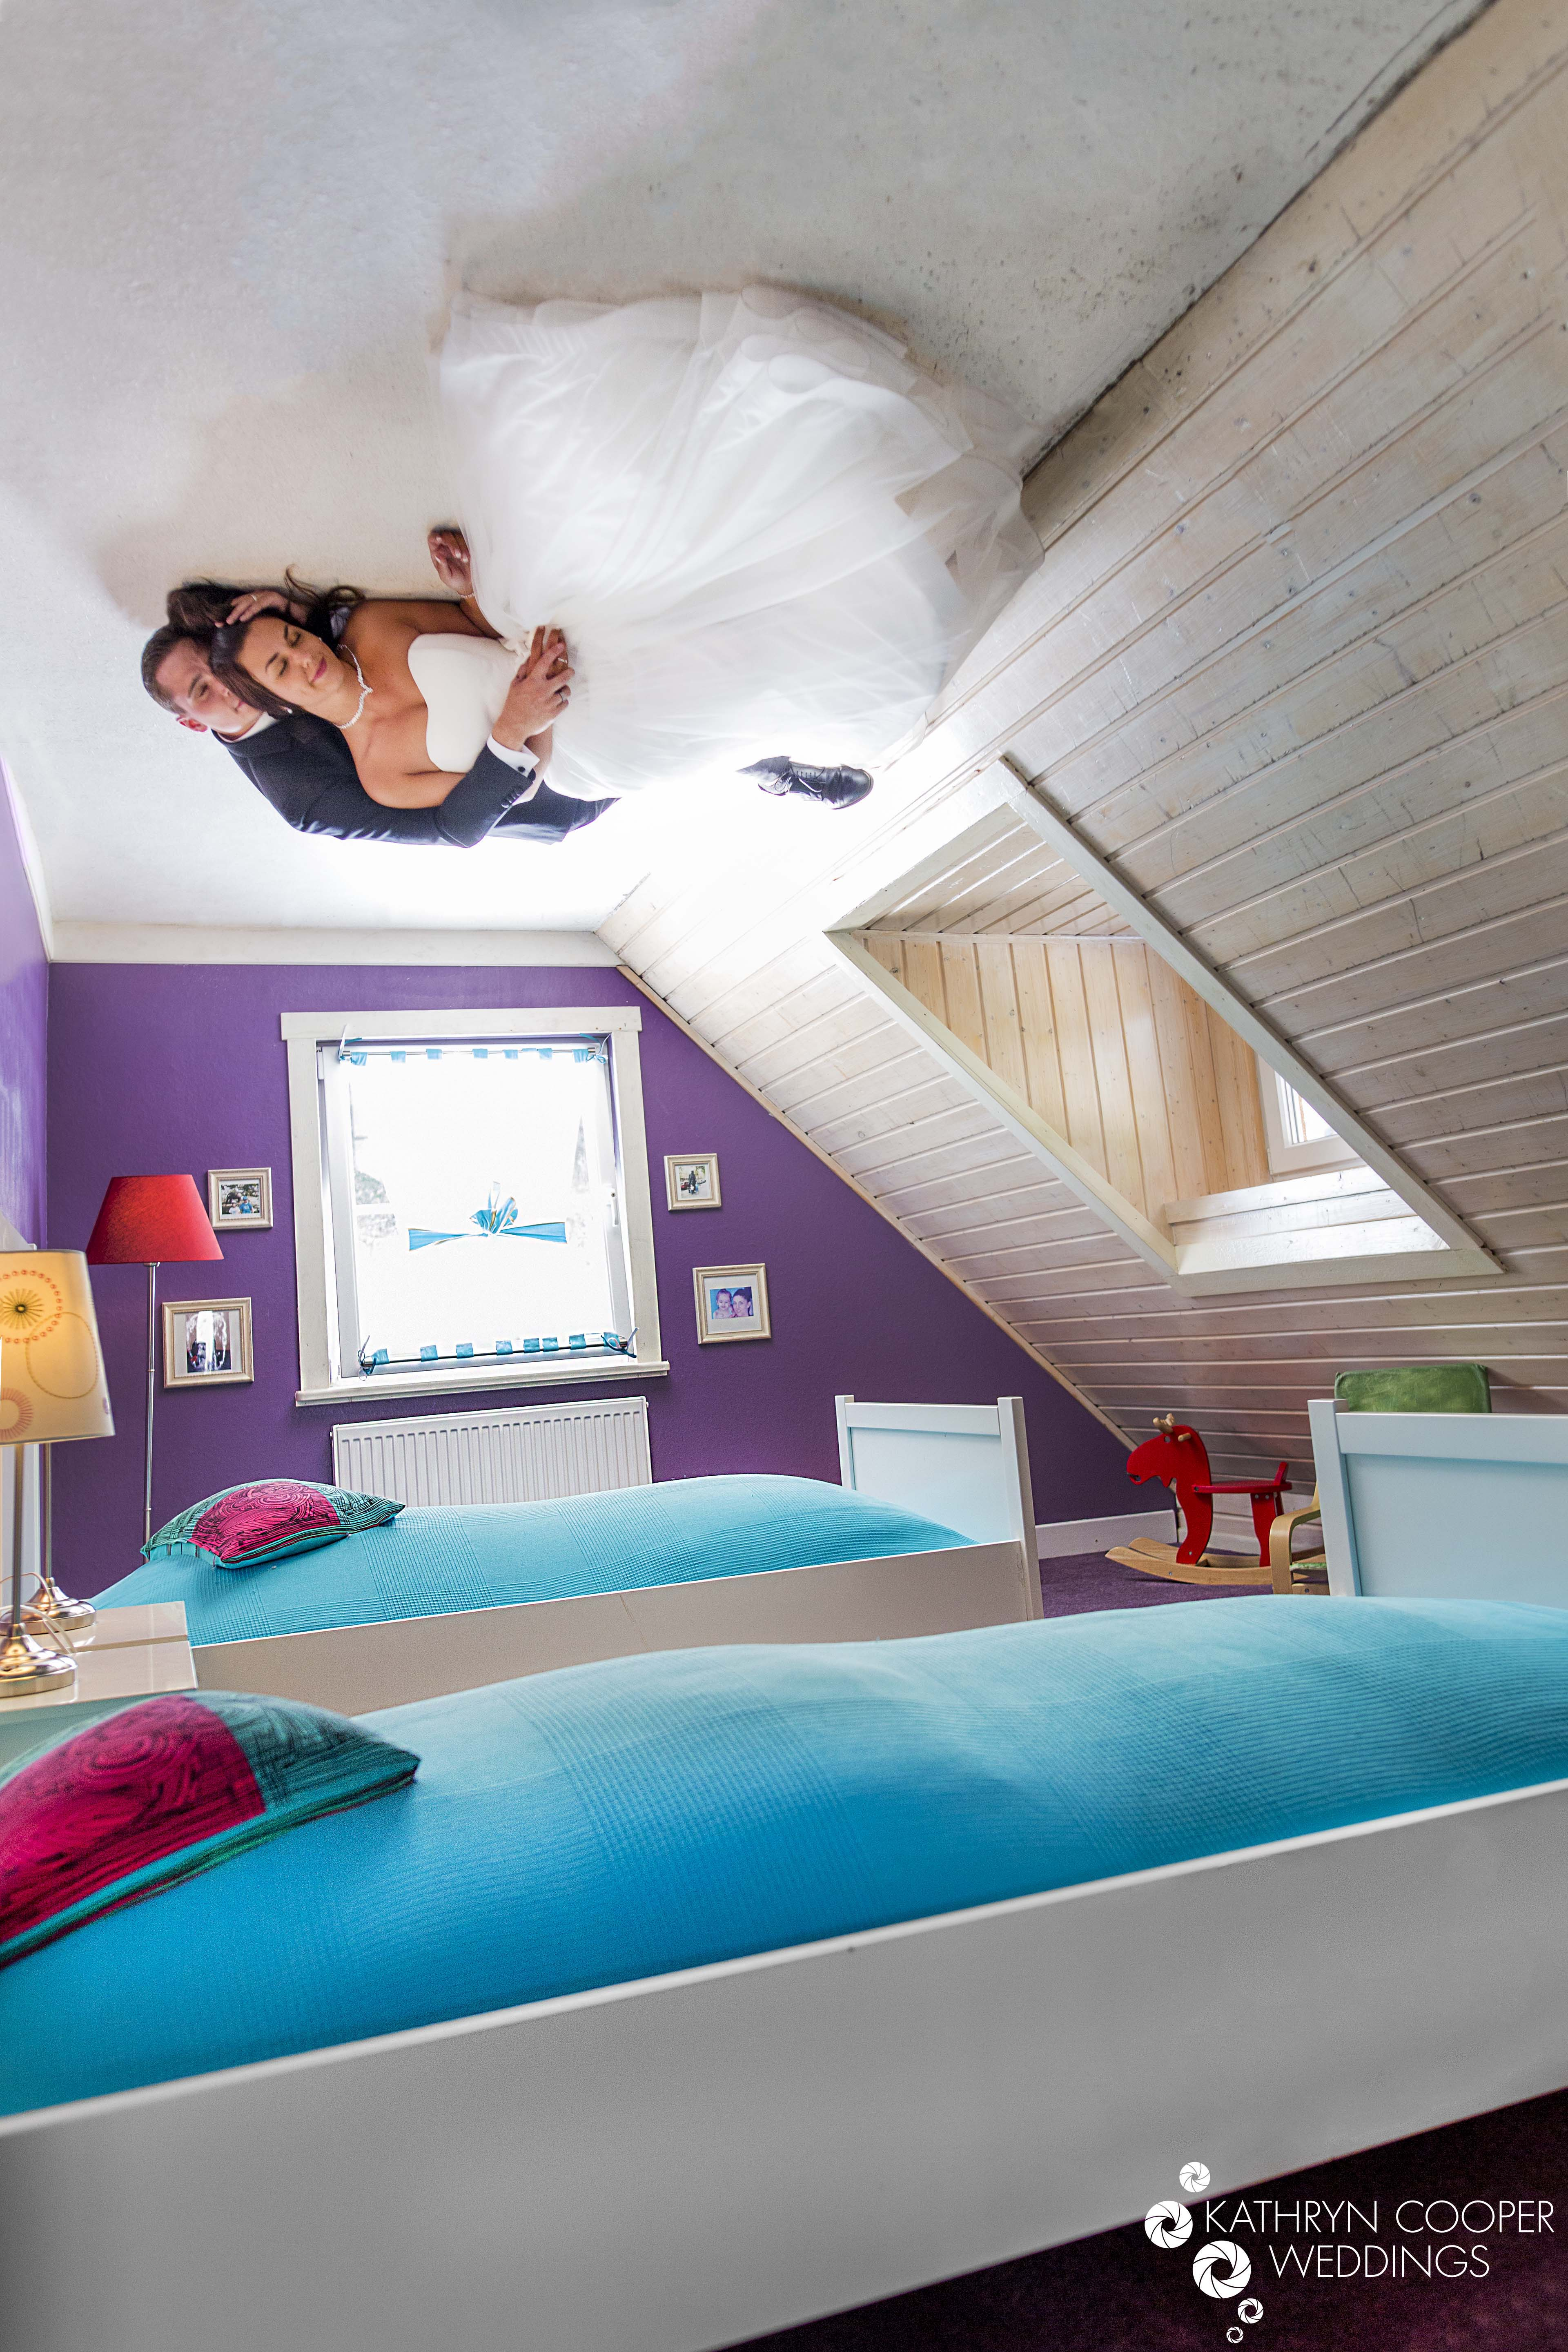 Unique wedding photo of couple upside down on ceiling, couple asleep in Austria at museum